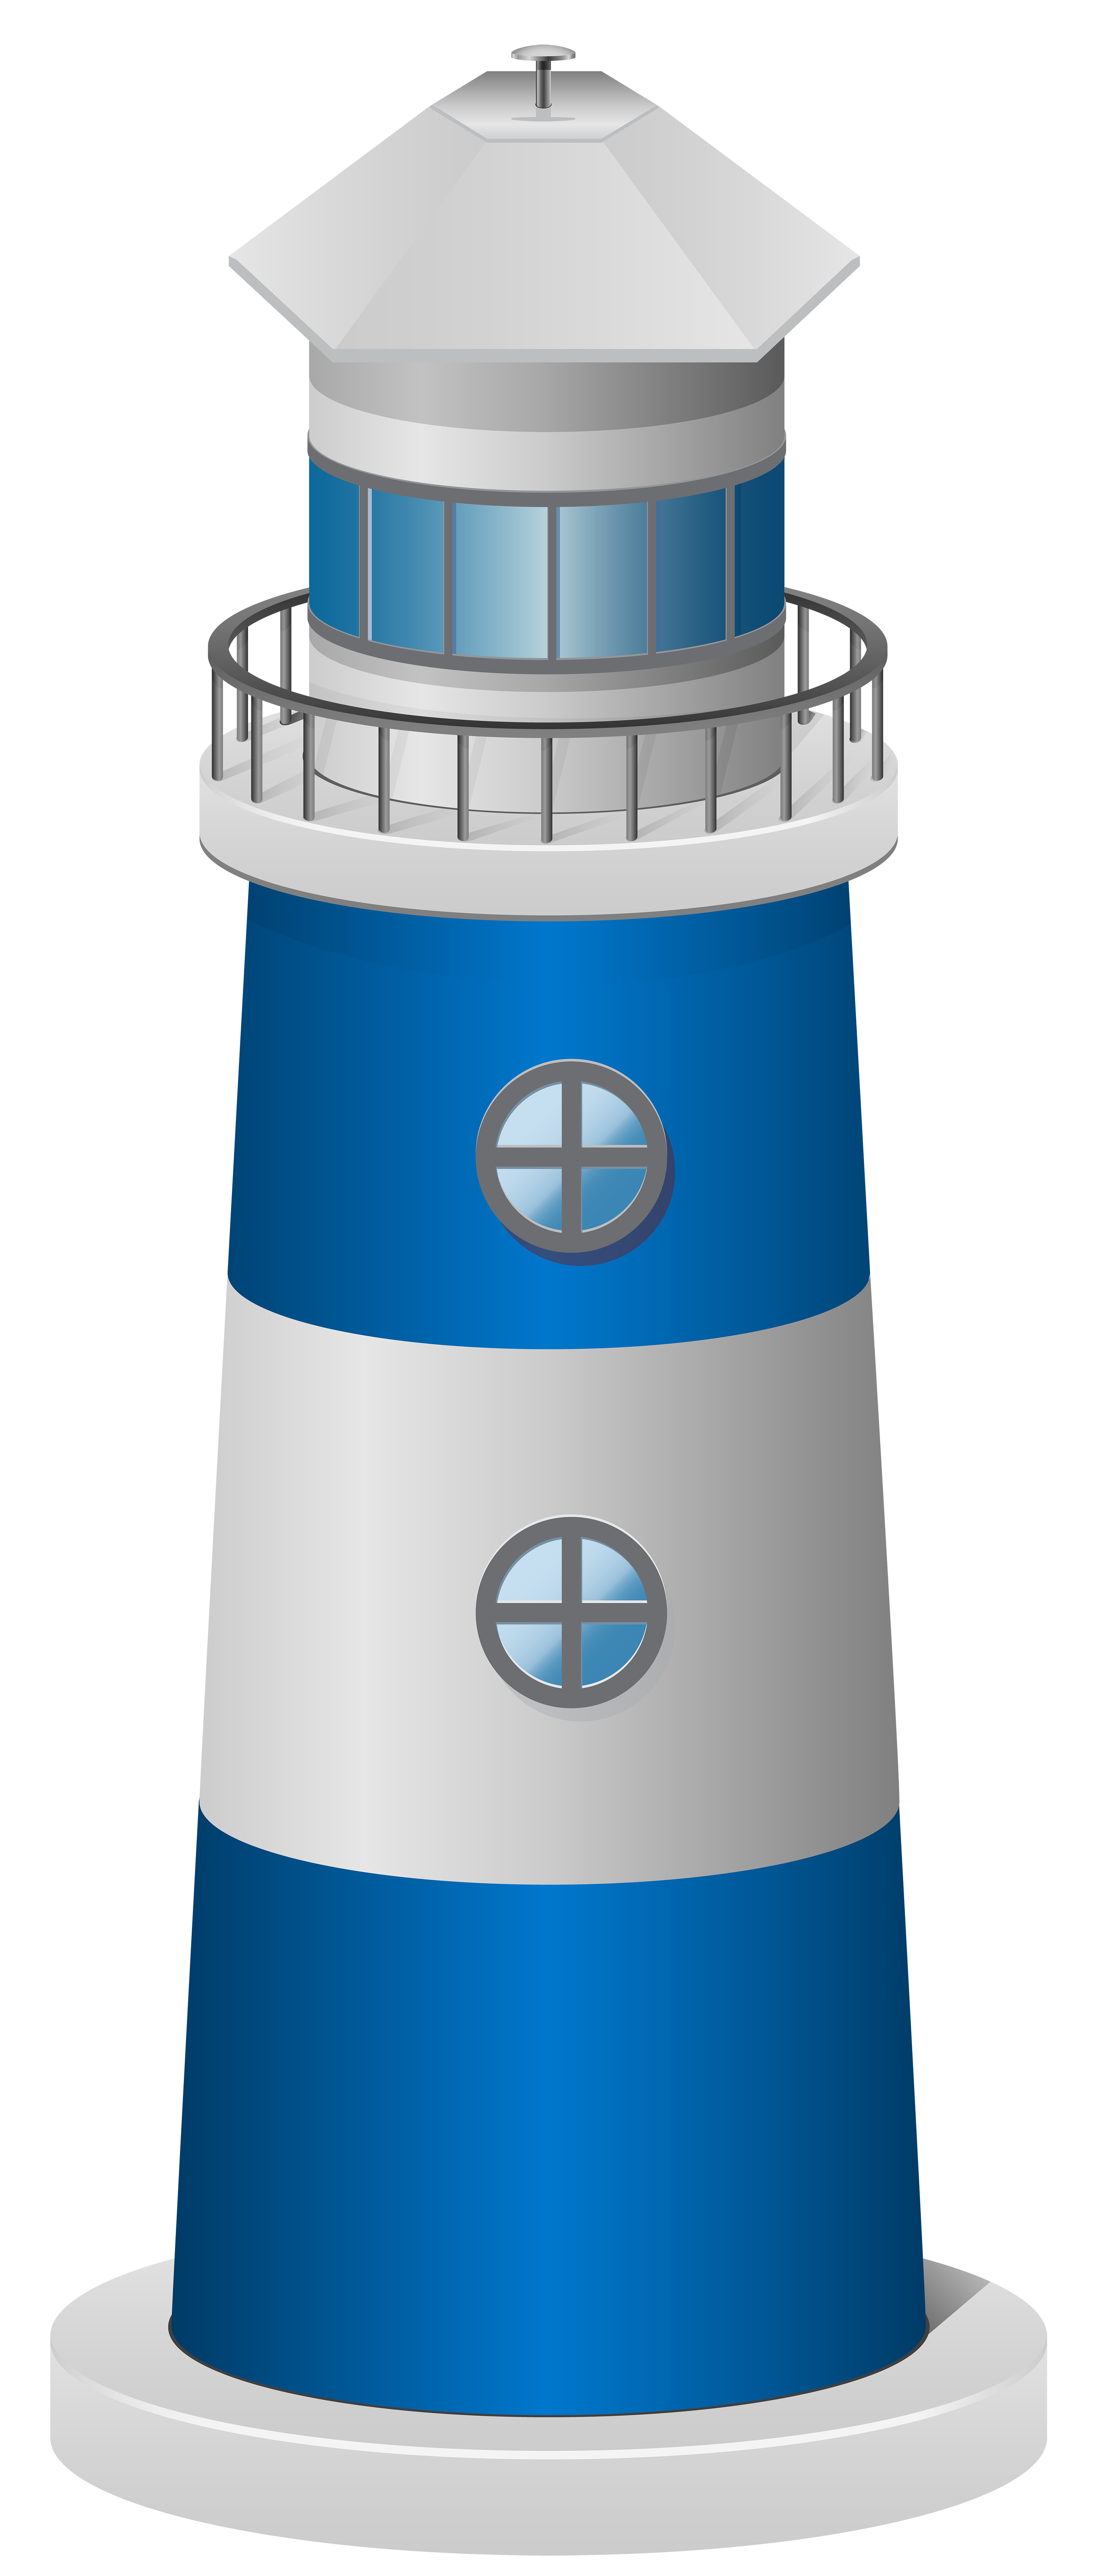 Blue light house clipart image free library Lighthouse Blue PNG Clip Art Image | Gallery Yopriceville - High ... image free library